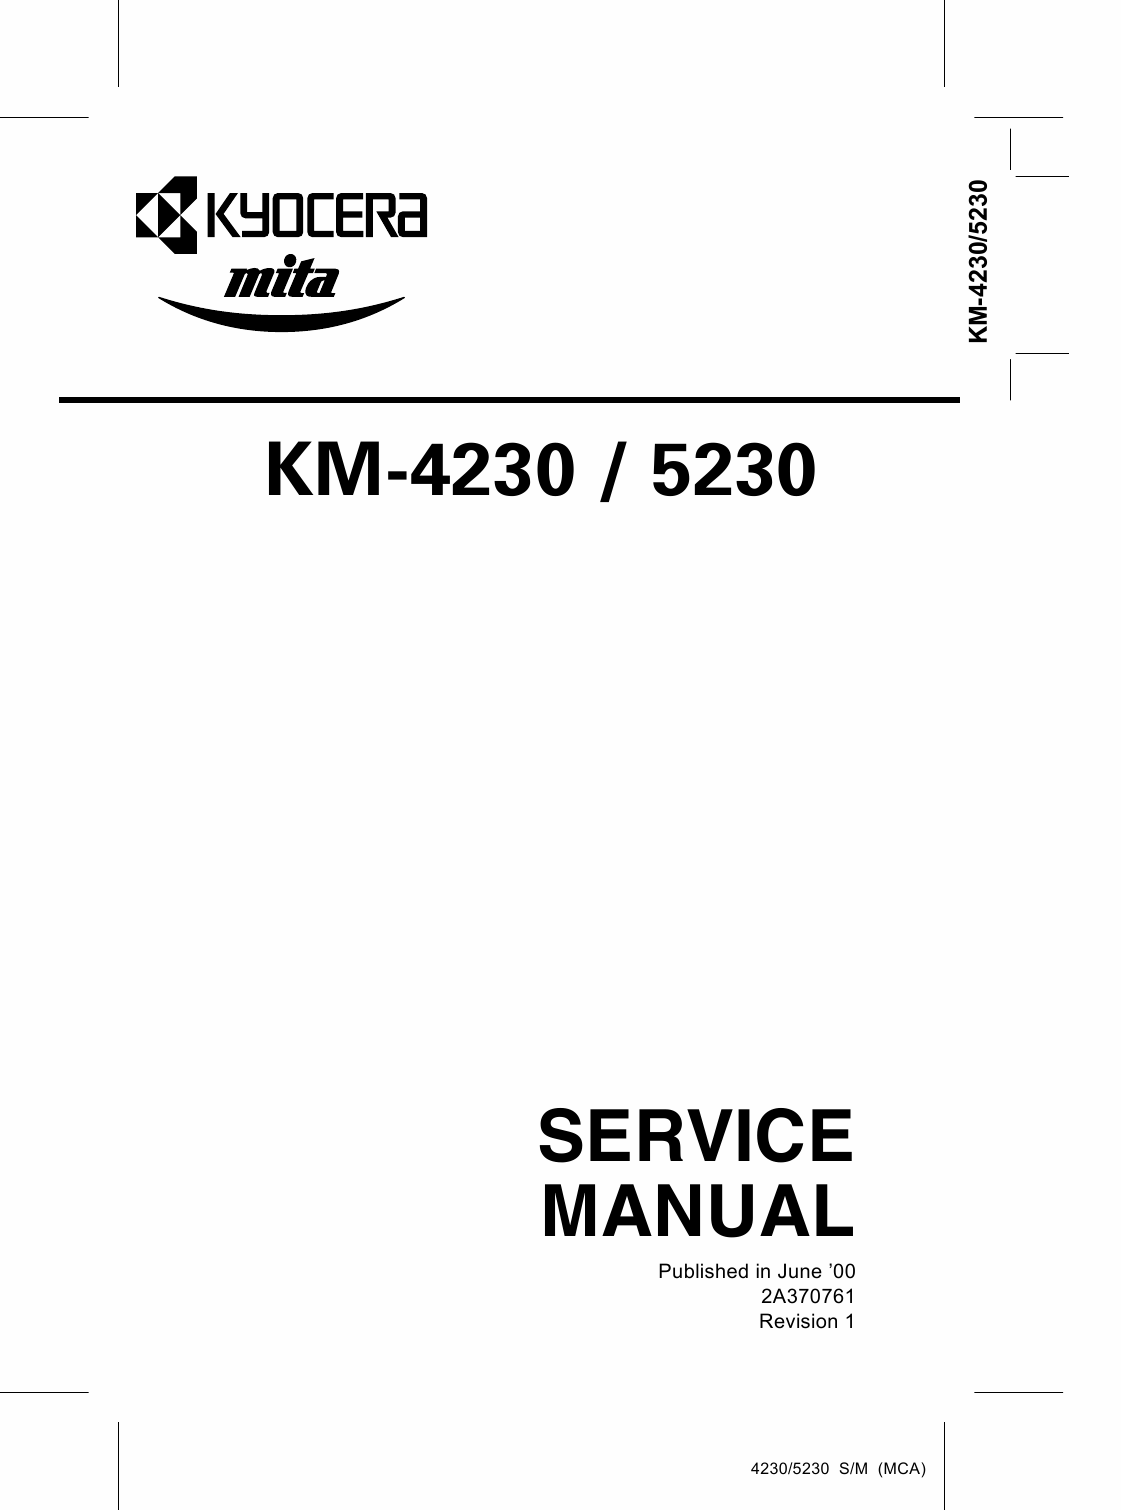 KYOCERA Copier KM-4230 5230 Parts and Service Manual-1